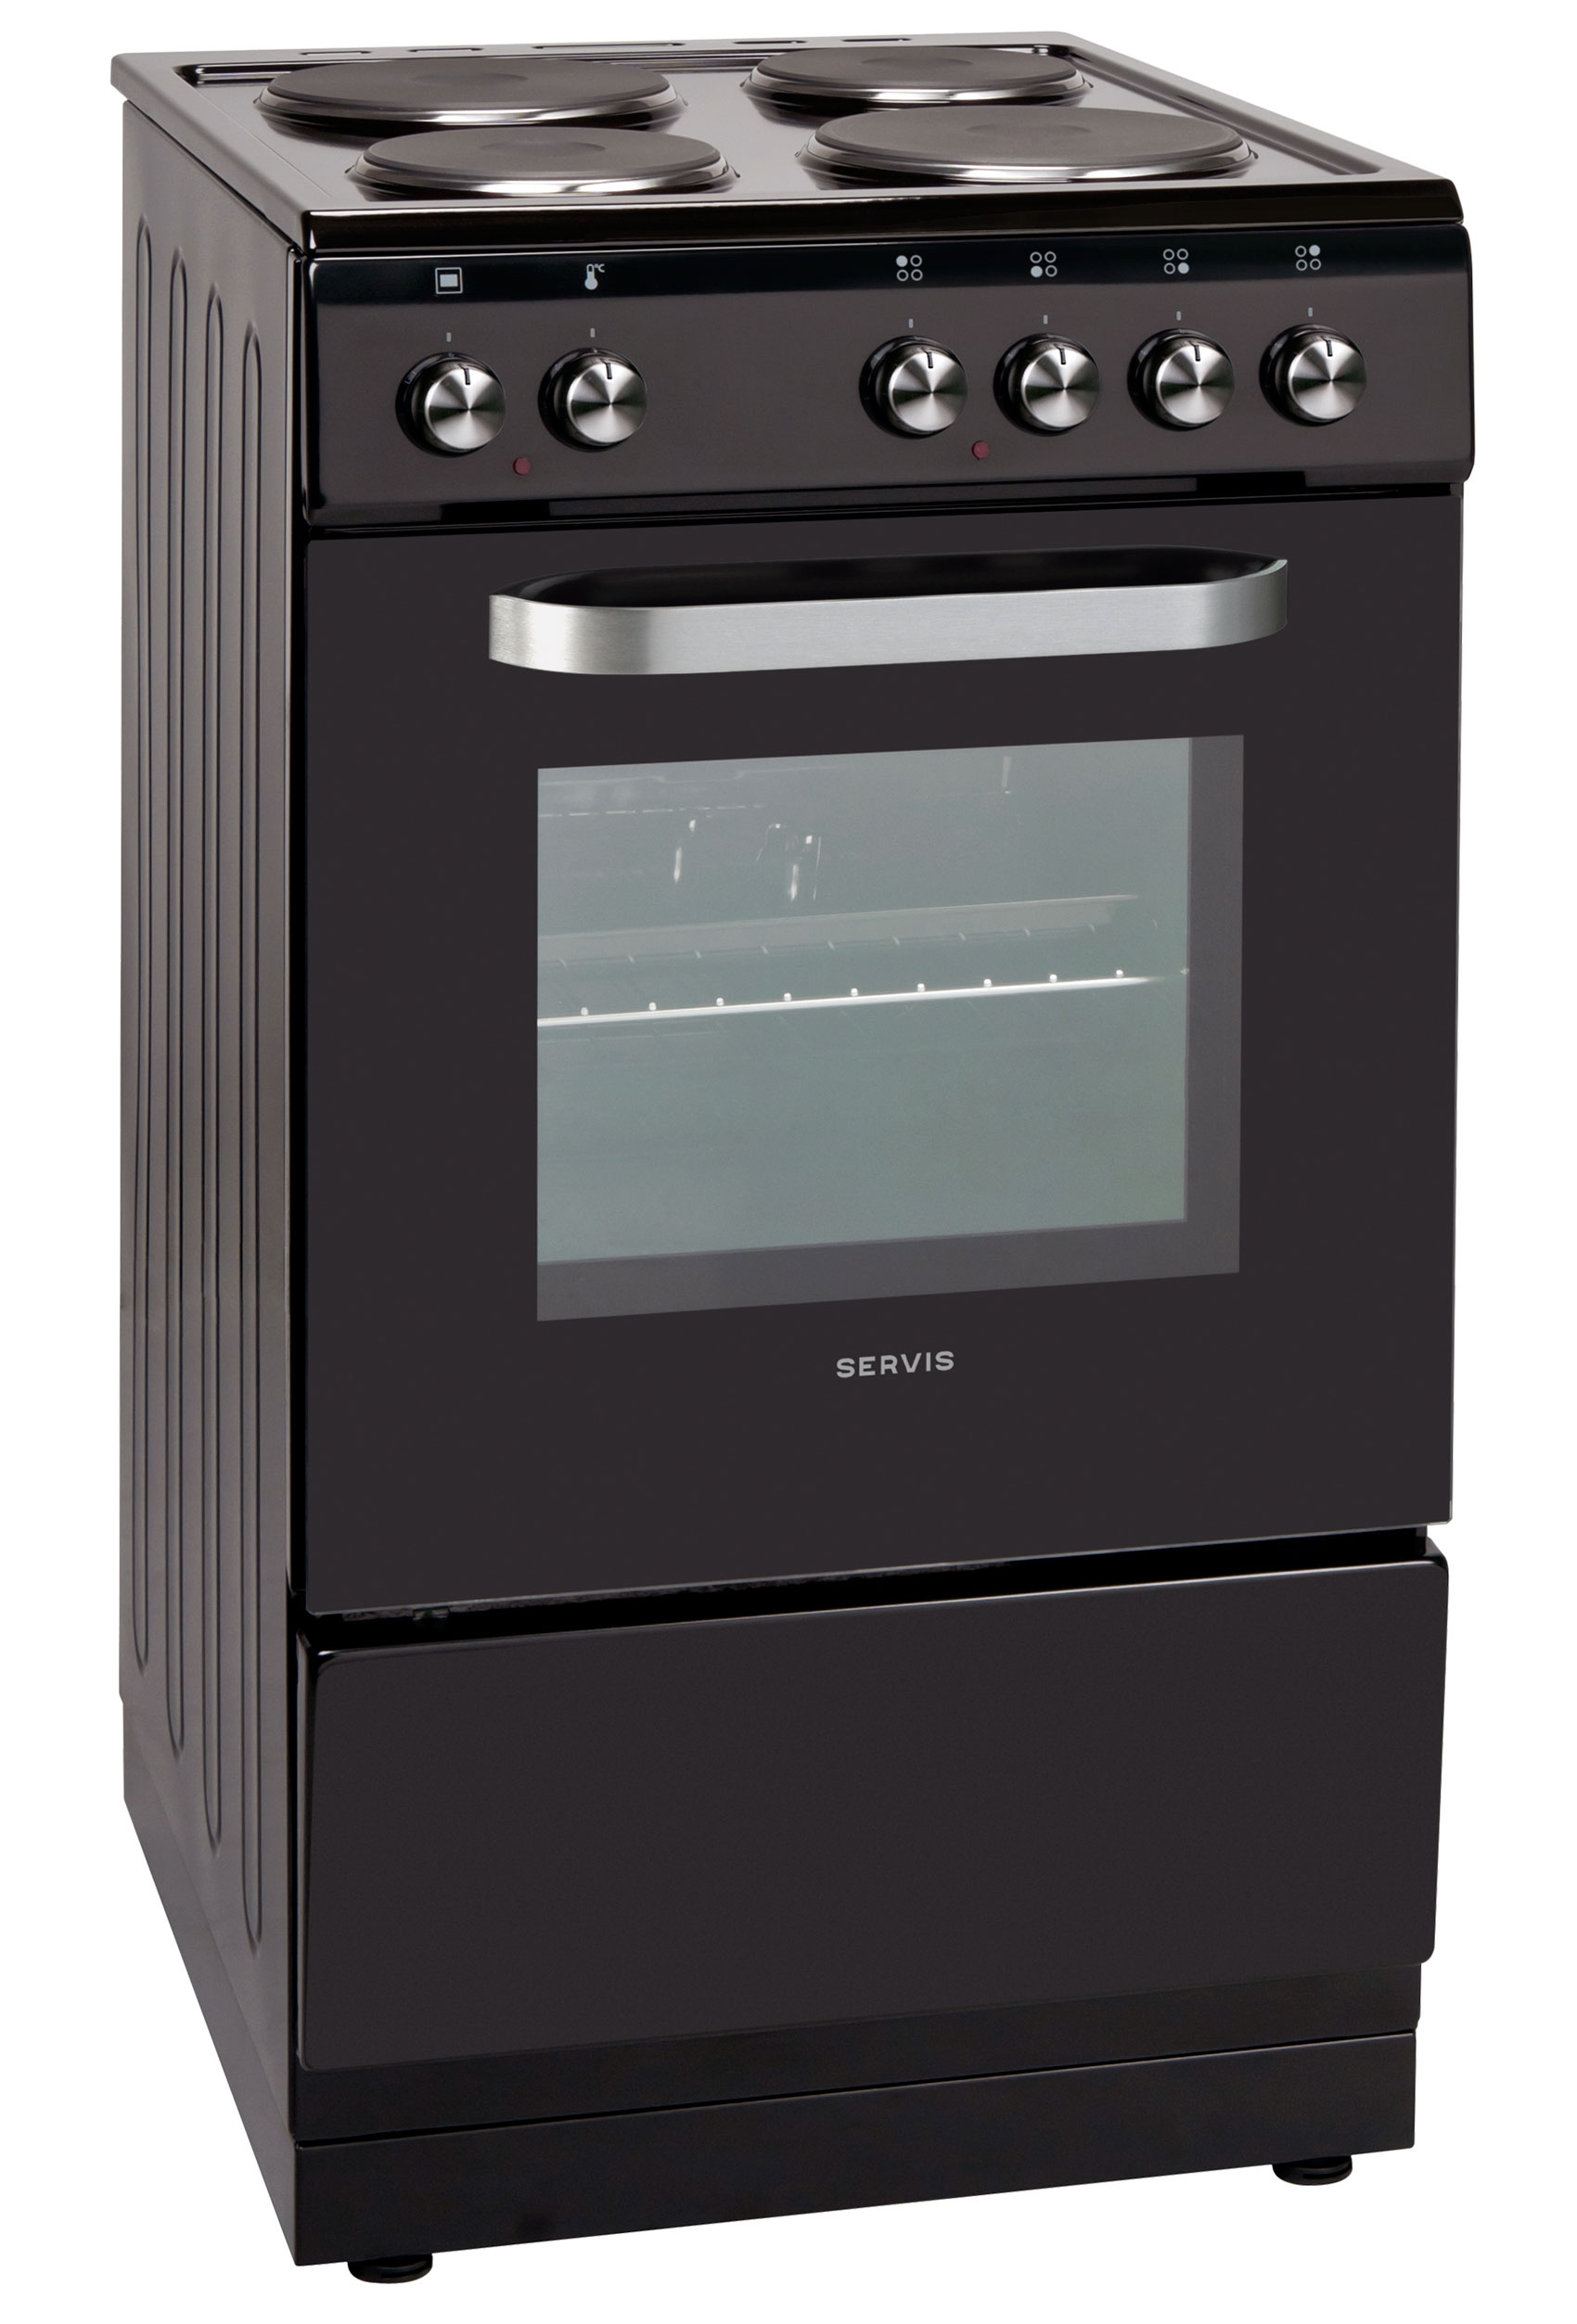 SSE50B - Black - Electric Cooker